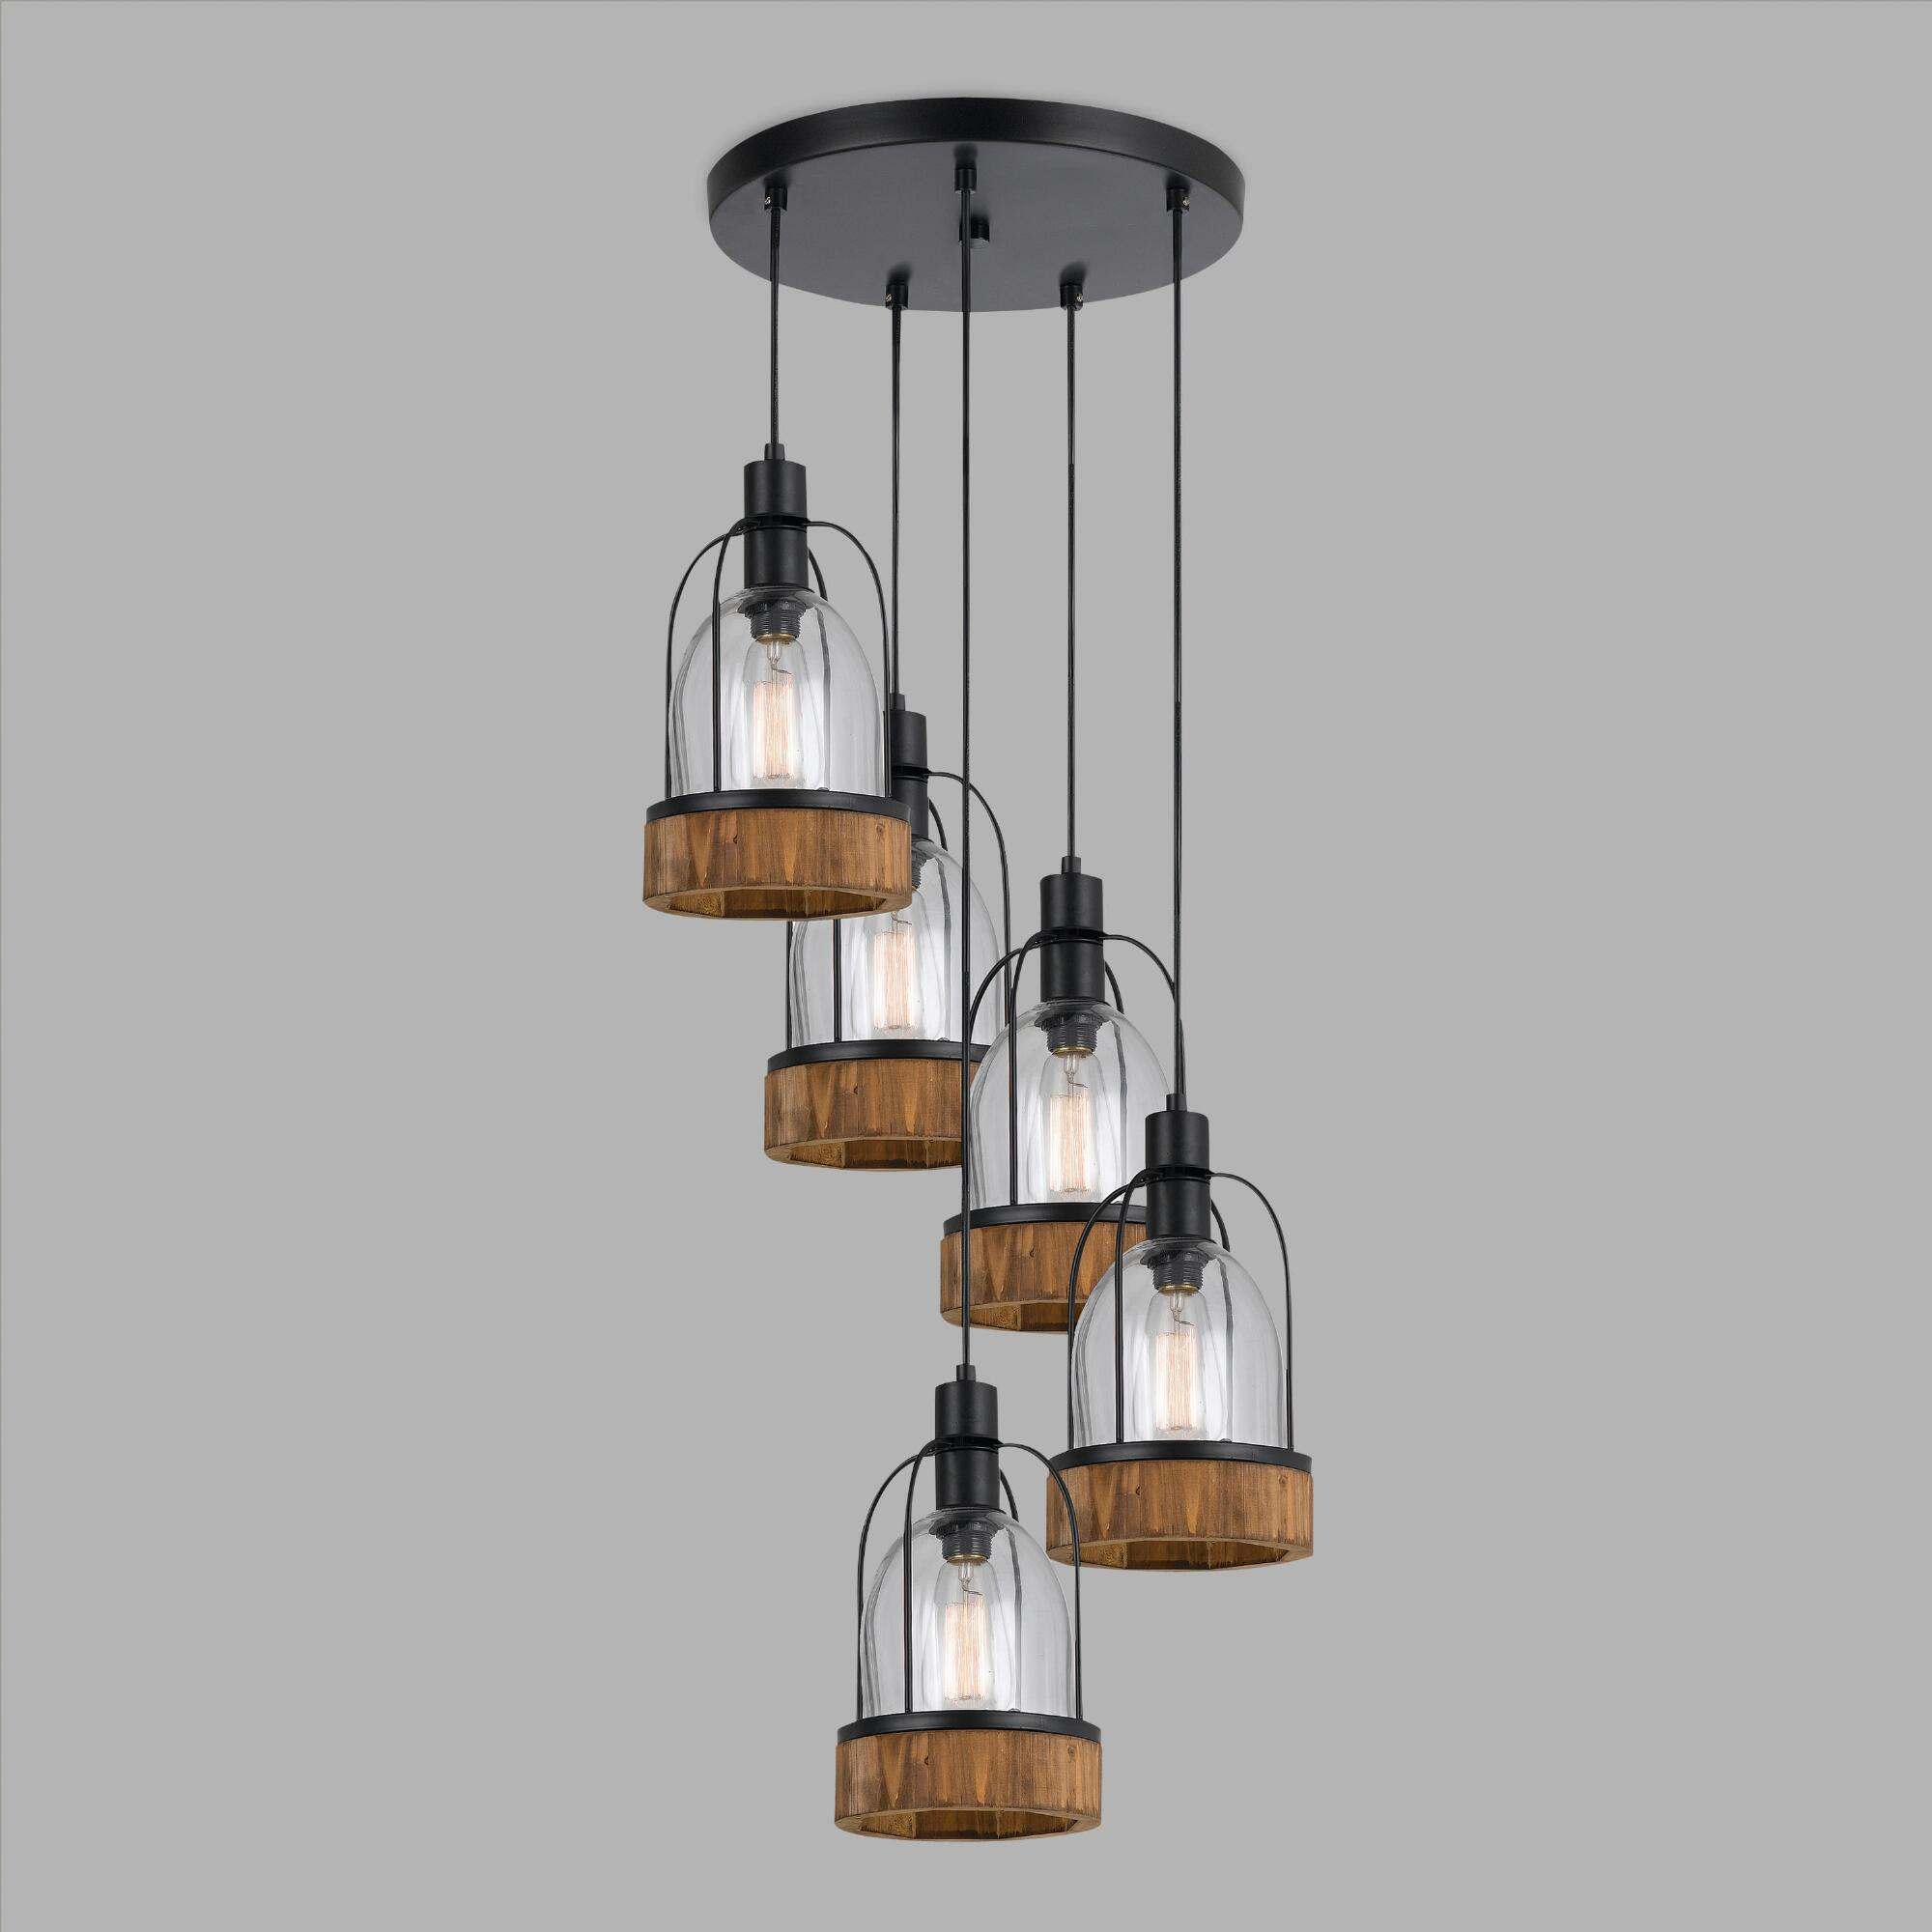 Wood And Glass Industrial Staggered 5 Light Pendant Lamp